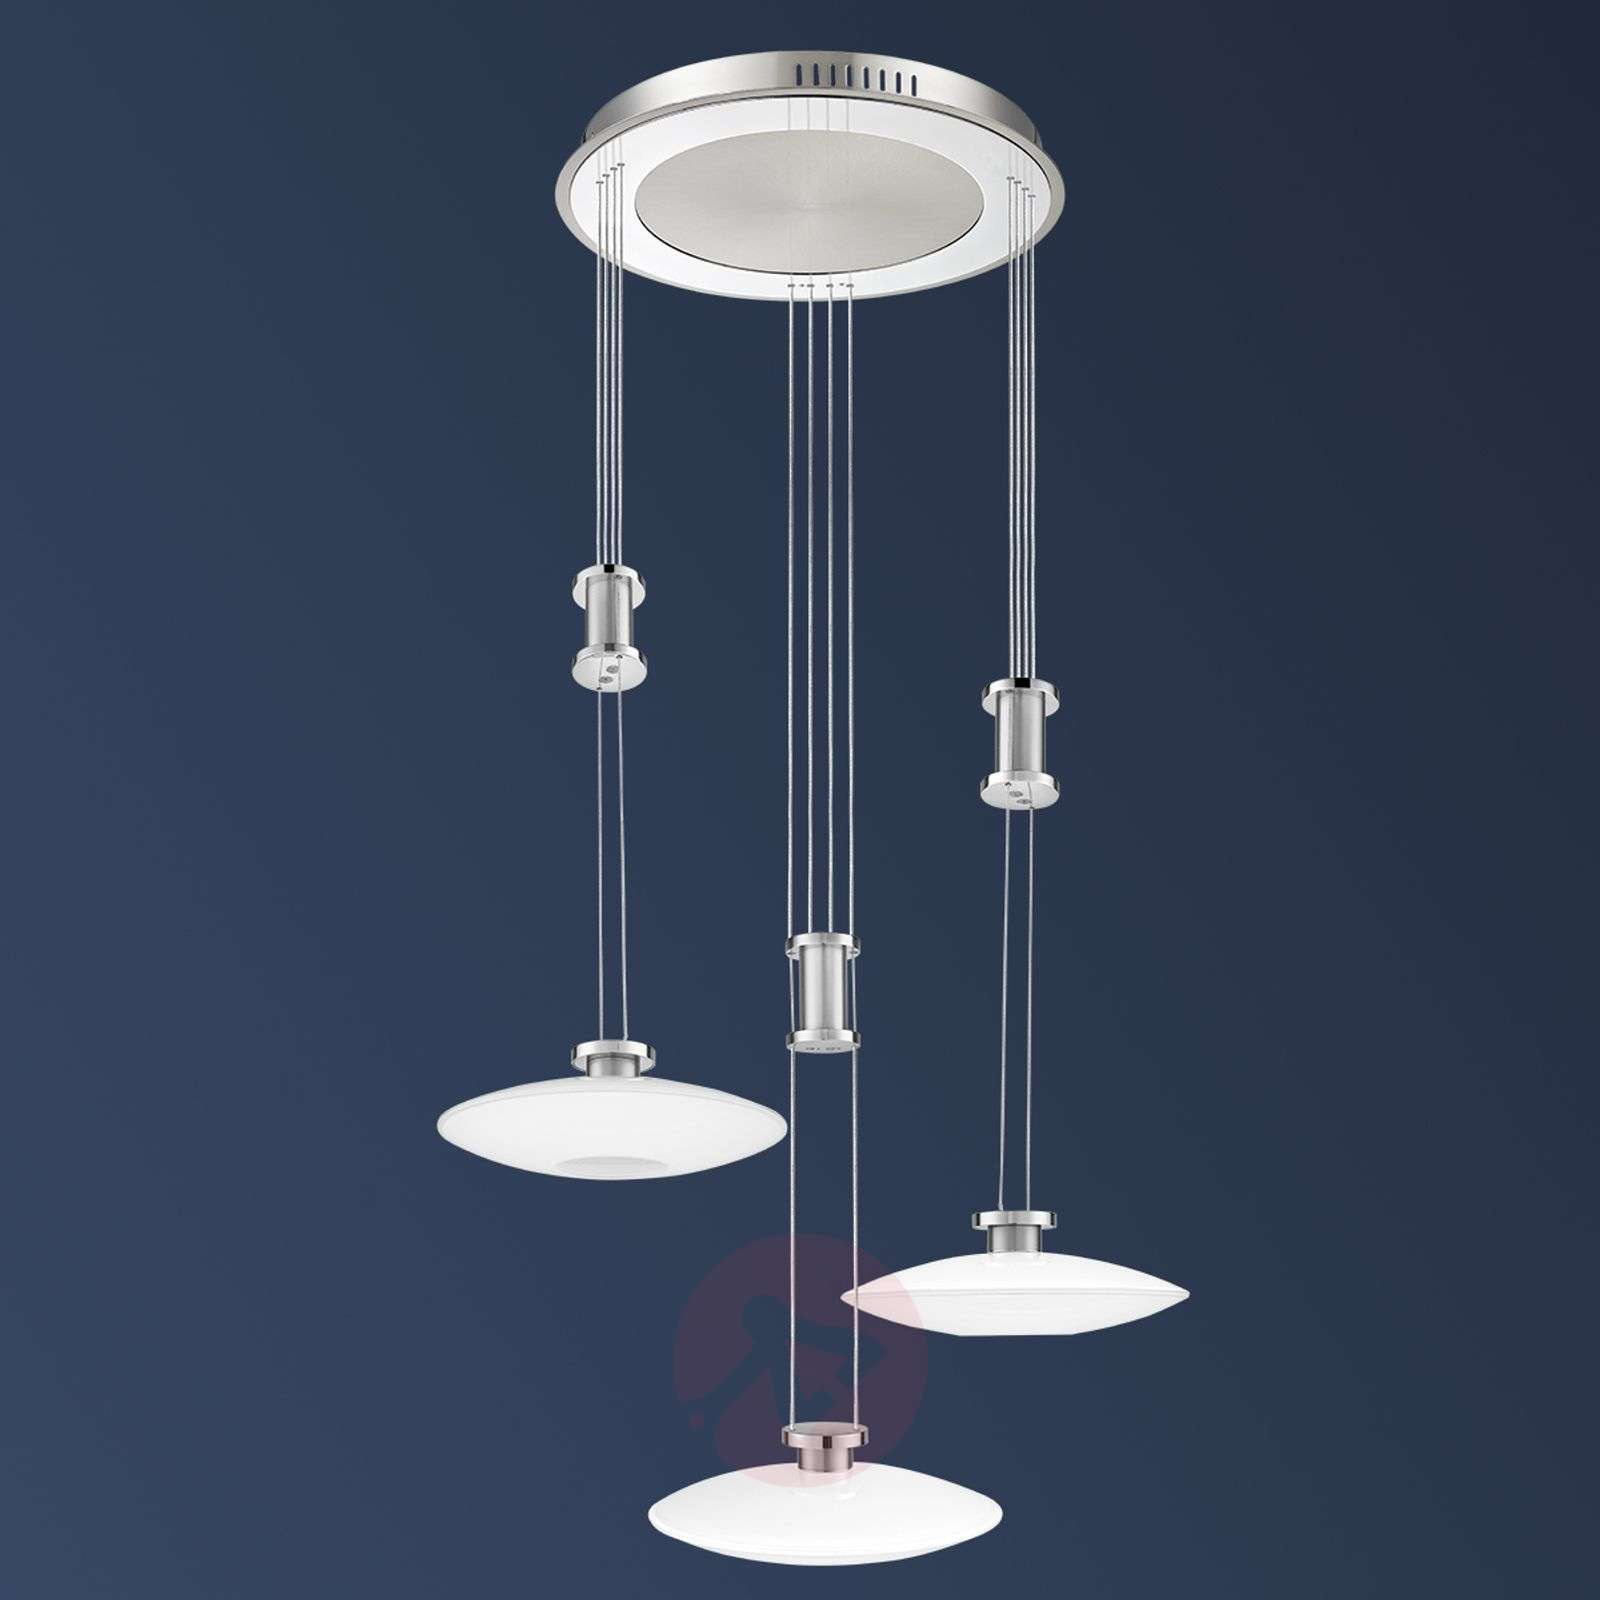 Suspension led new elina nickel embase ronde for Suspension luminaire ronde